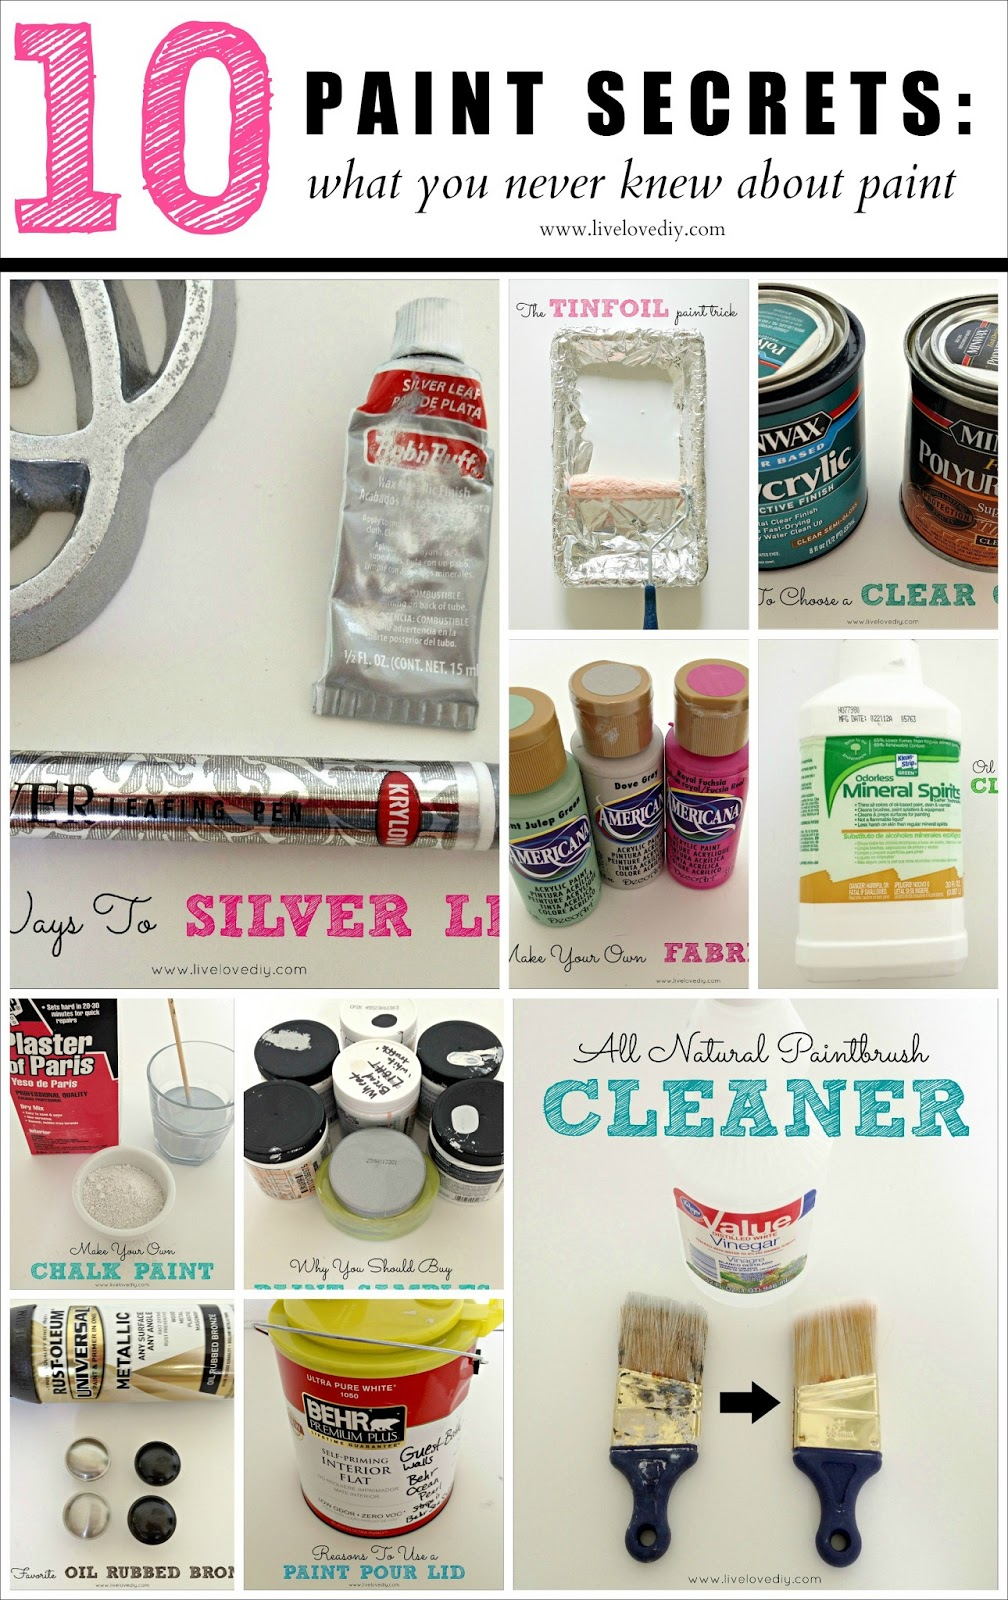 10 Painting Tips   Tricks You Never Knew. LiveLoveDIY  10 Painting Tips   Tricks You Never Knew